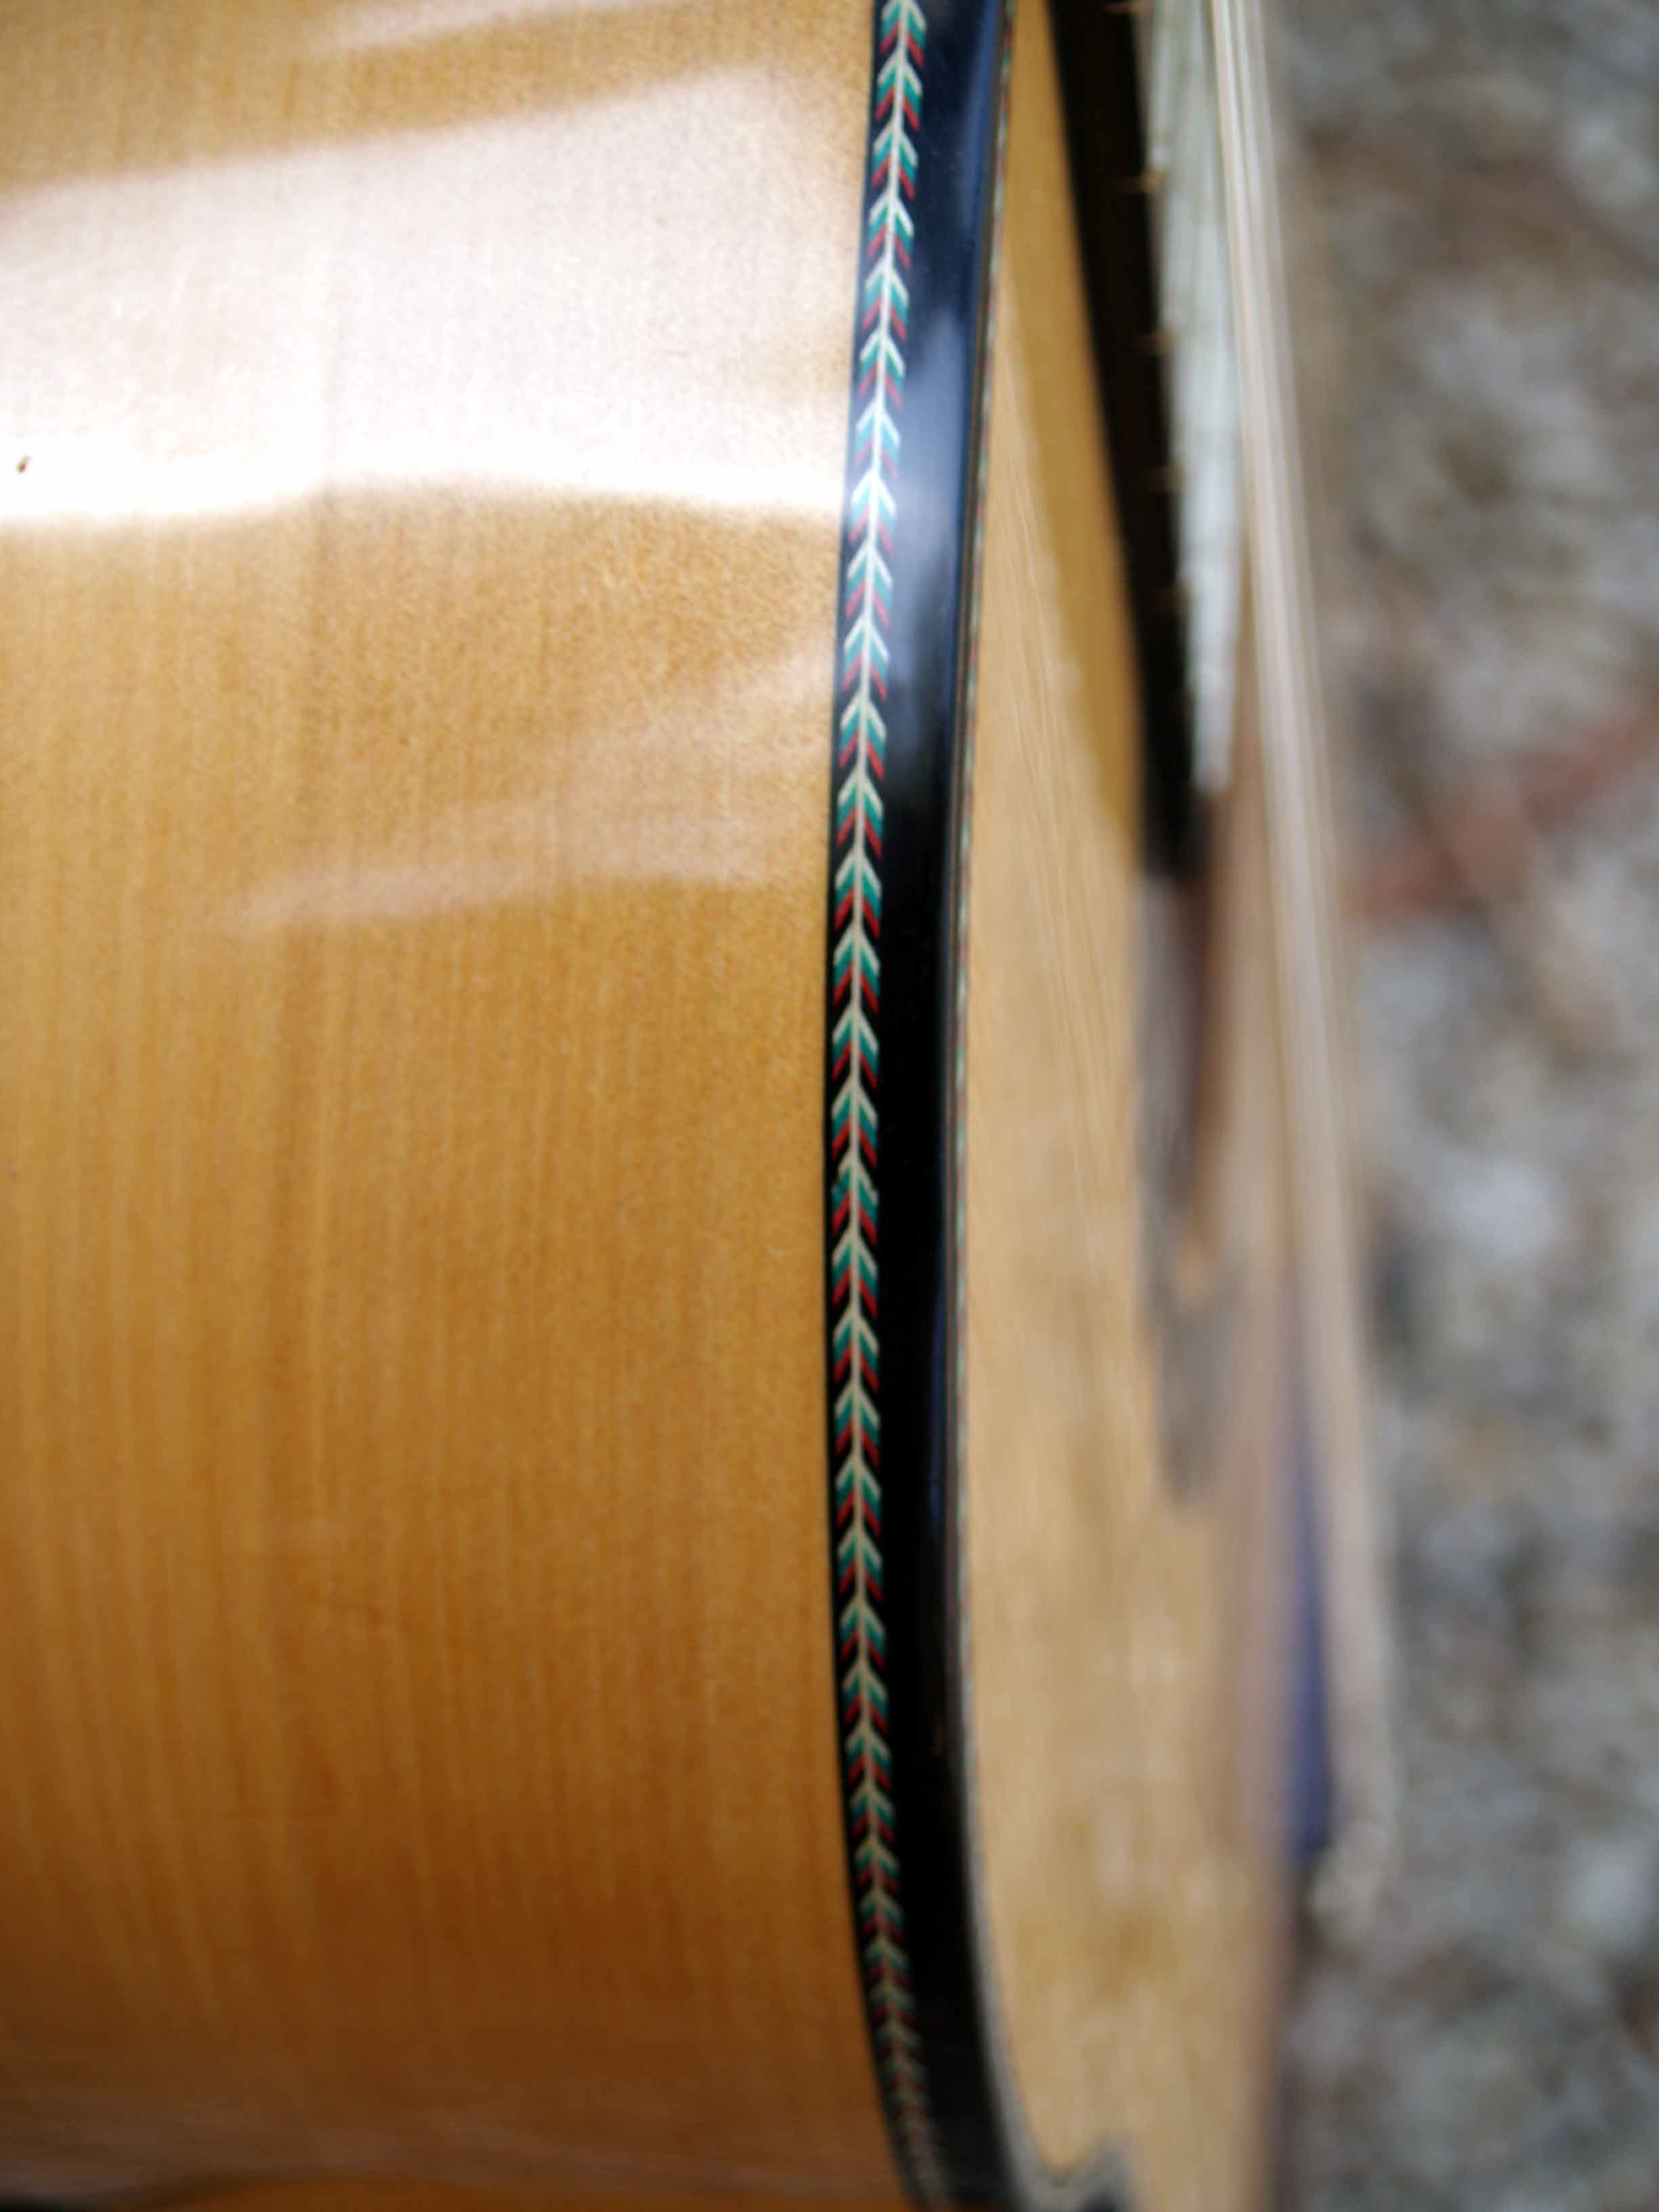 Flamenco guitar spikes binding